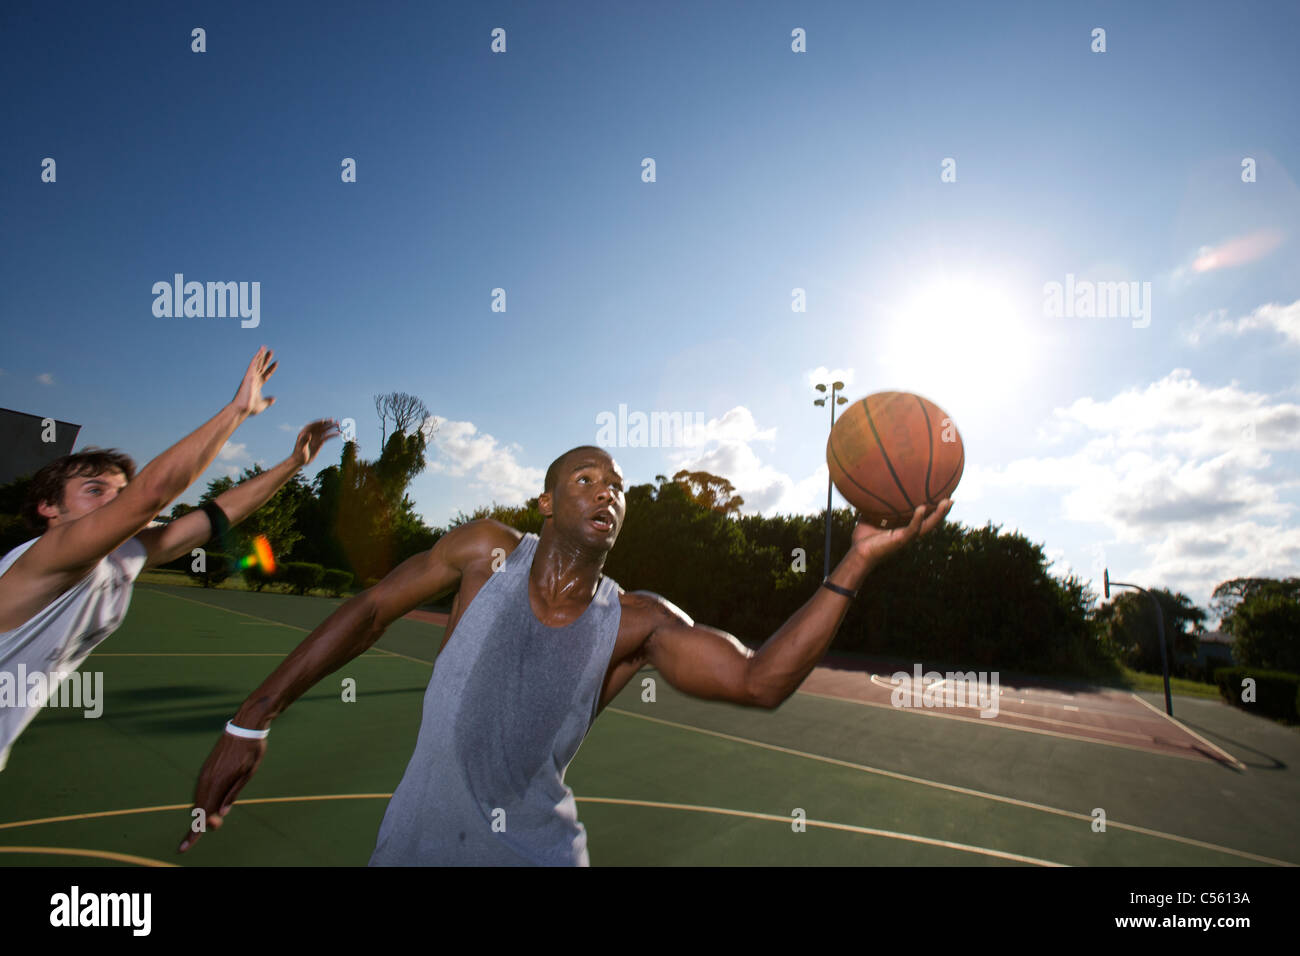 males playing outdoor basketball game - Stock Image